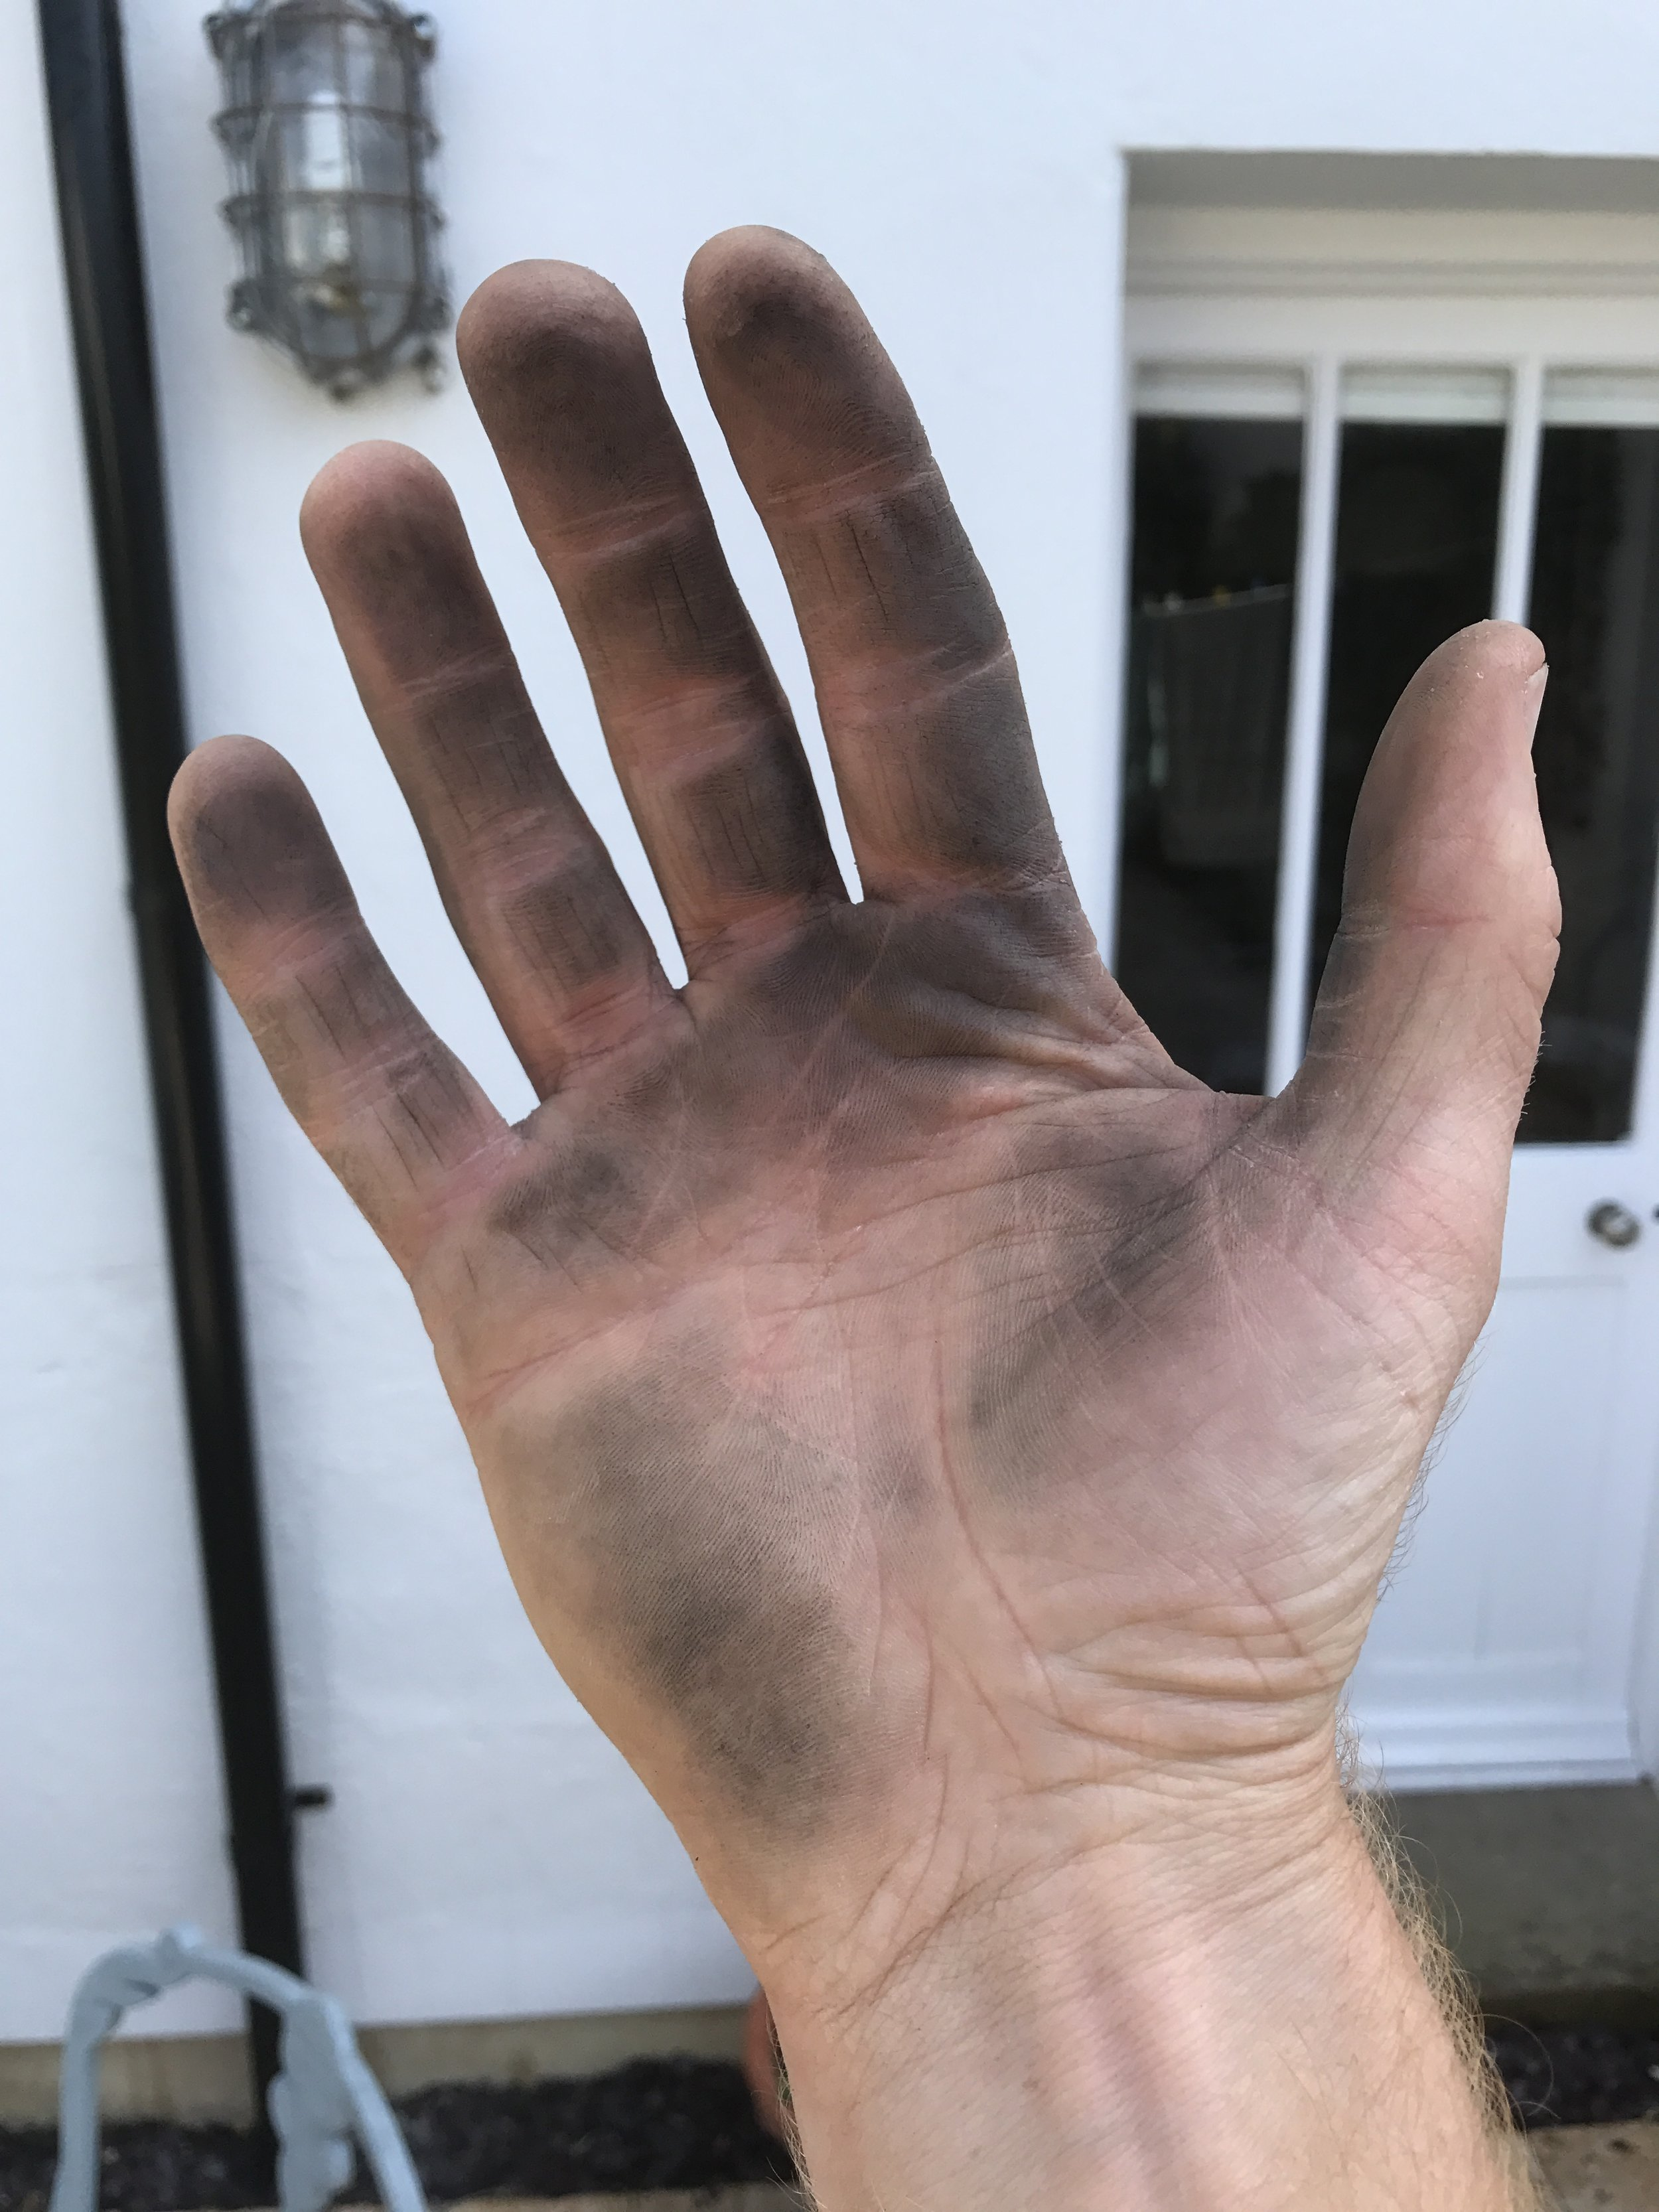 The pole is starting to wear out so the carbon deposits can transfer to your hand!